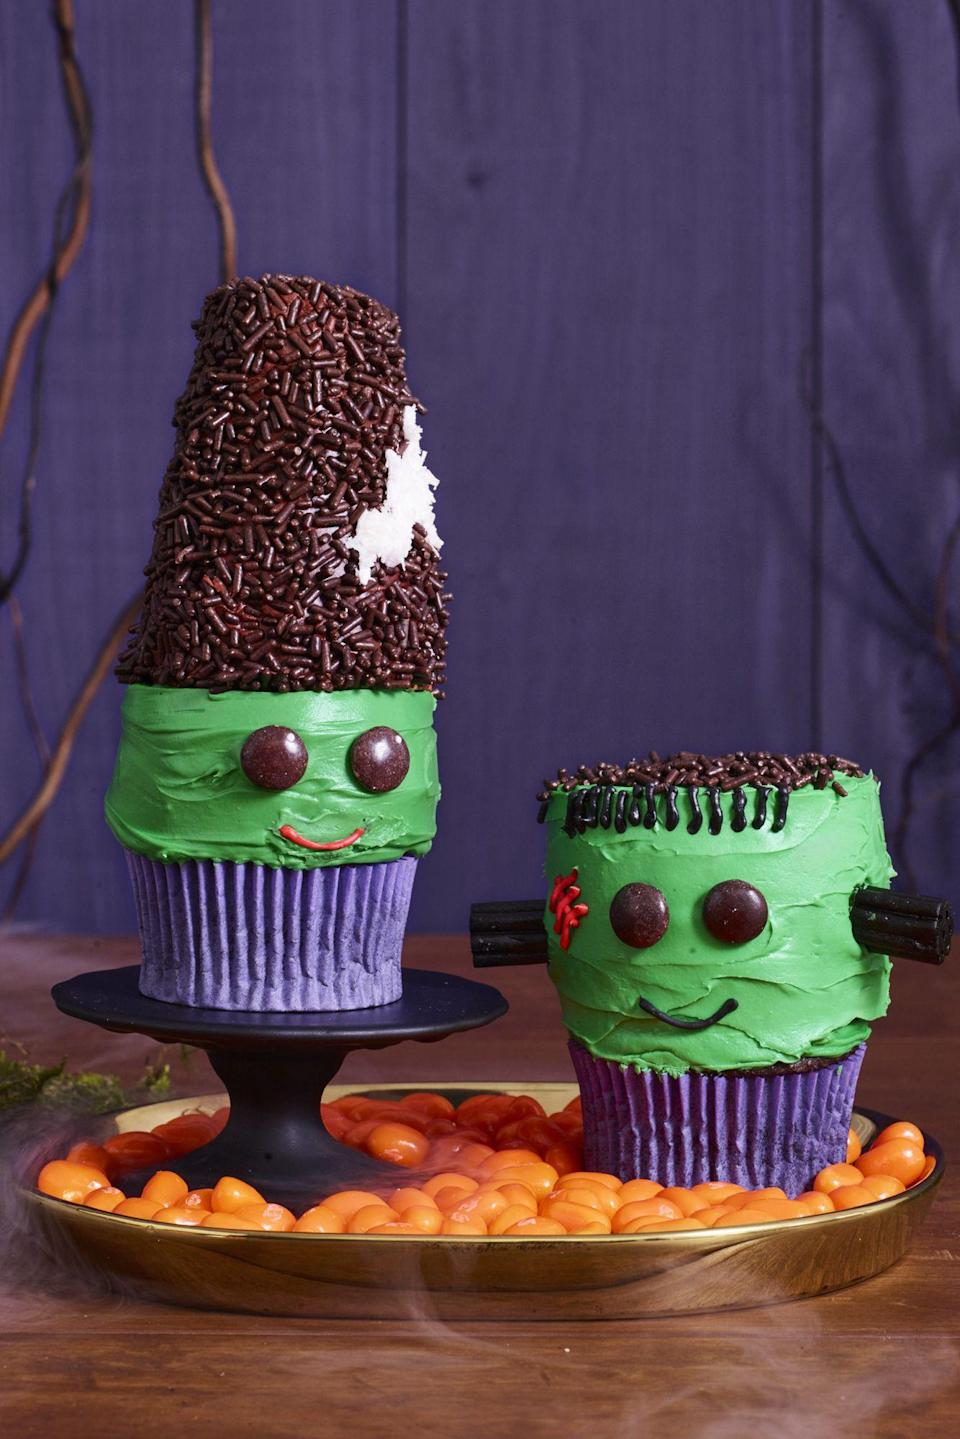 "<p>Transform store-bought cupcakes into a <a href=""https://www.womansday.com/food-recipes/food-drinks/g8/halloween-cupcakes/"" rel=""nofollow noopener"" target=""_blank"" data-ylk=""slk:spooky, party-ready treat"" class=""link rapid-noclick-resp"">spooky, party-ready treat</a>.</p><p><strong><a href=""https://www.womansday.com/food-recipes/food-drinks/a23570068/frankenstein-and-his-bride-cupcakes-recipe/"" rel=""nofollow noopener"" target=""_blank"" data-ylk=""slk:Get the recipe"" class=""link rapid-noclick-resp"">Get the recipe</a>. </strong></p>"